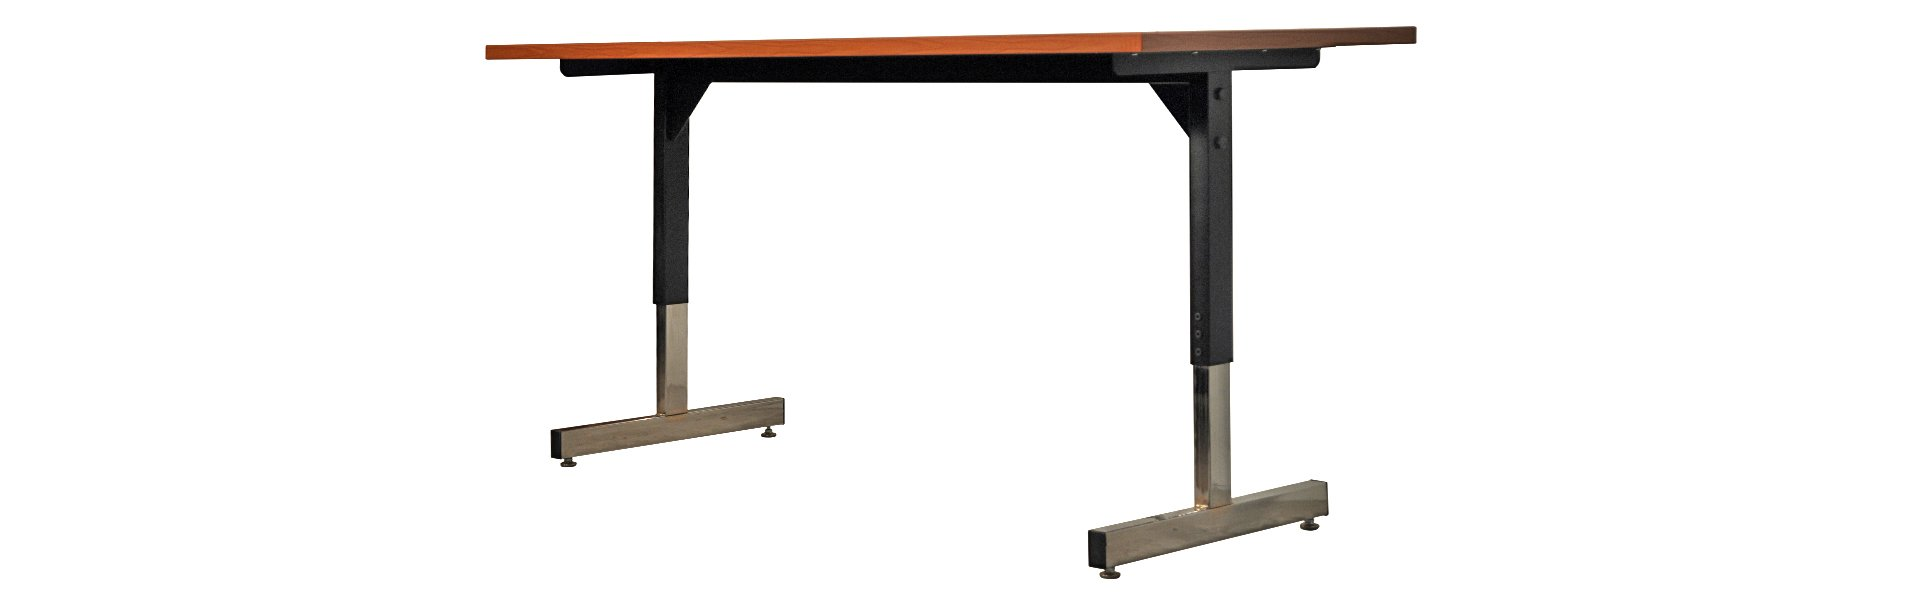 Corilam 615 Table